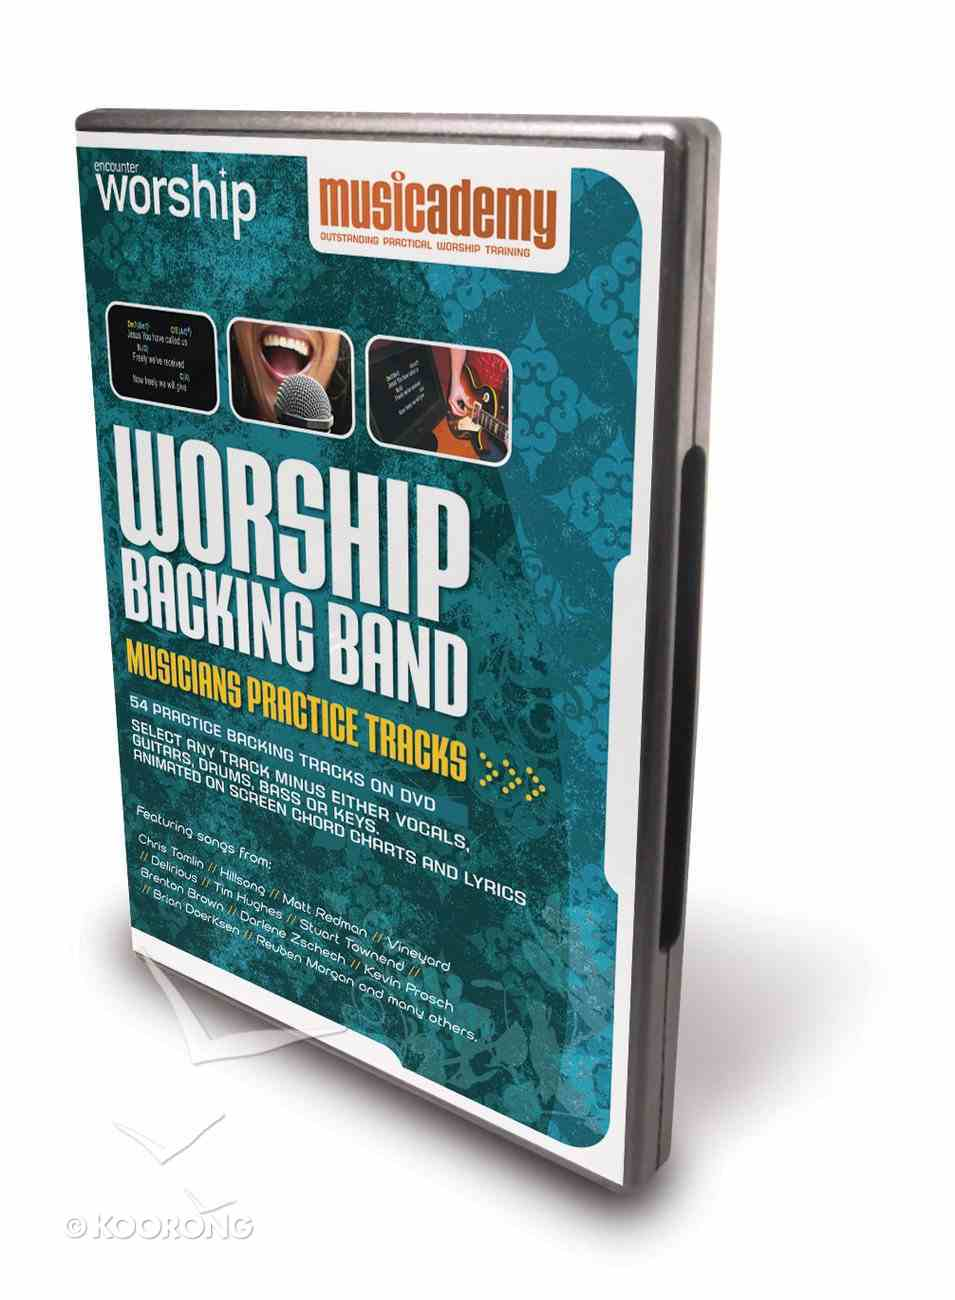 Musicademy: Worship Backing Band Musicians' Practice Tracks DVD